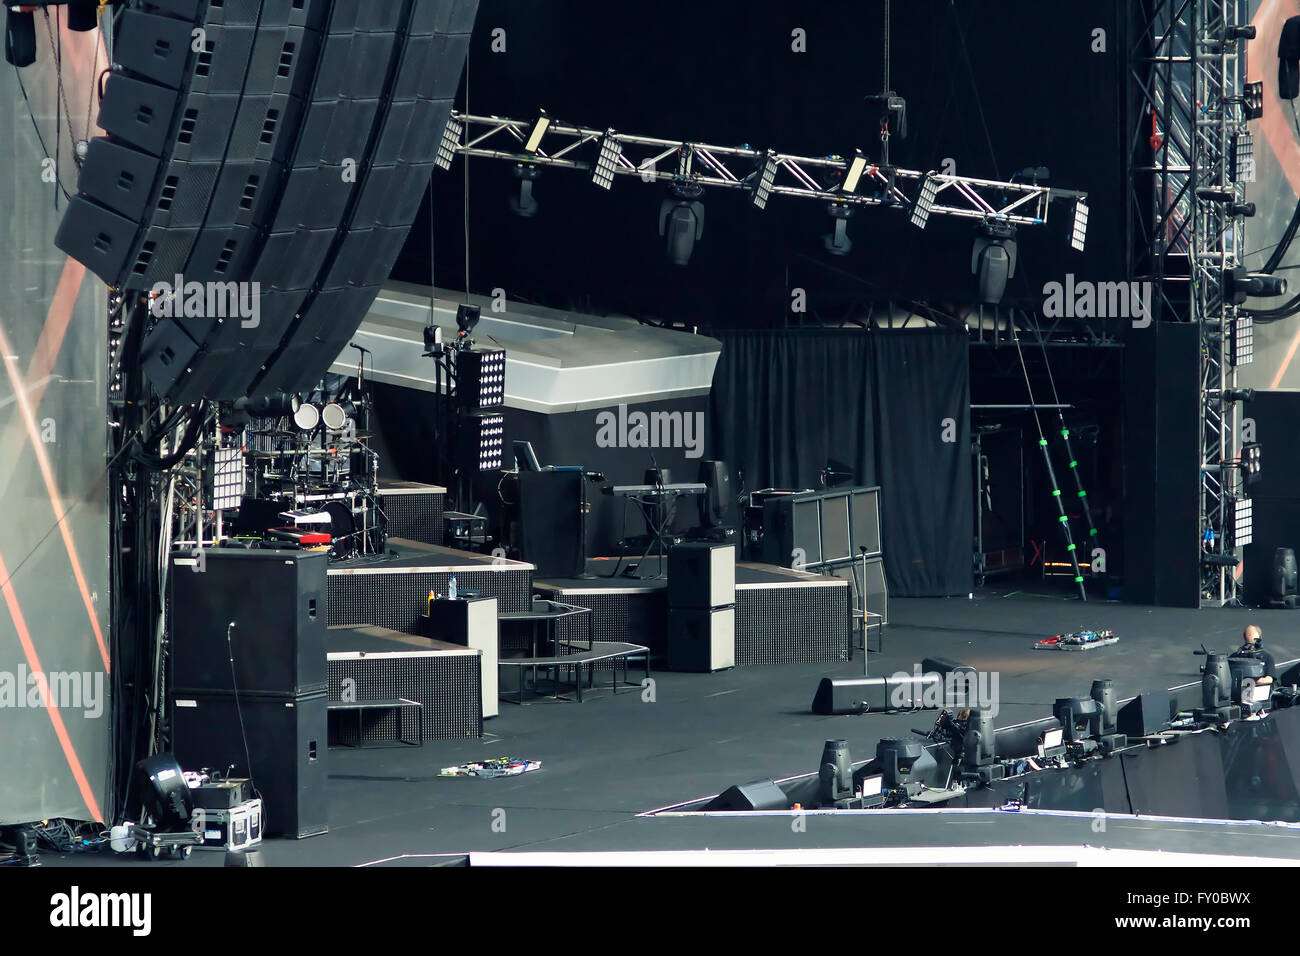 large empty rock concert stage - Stock Image